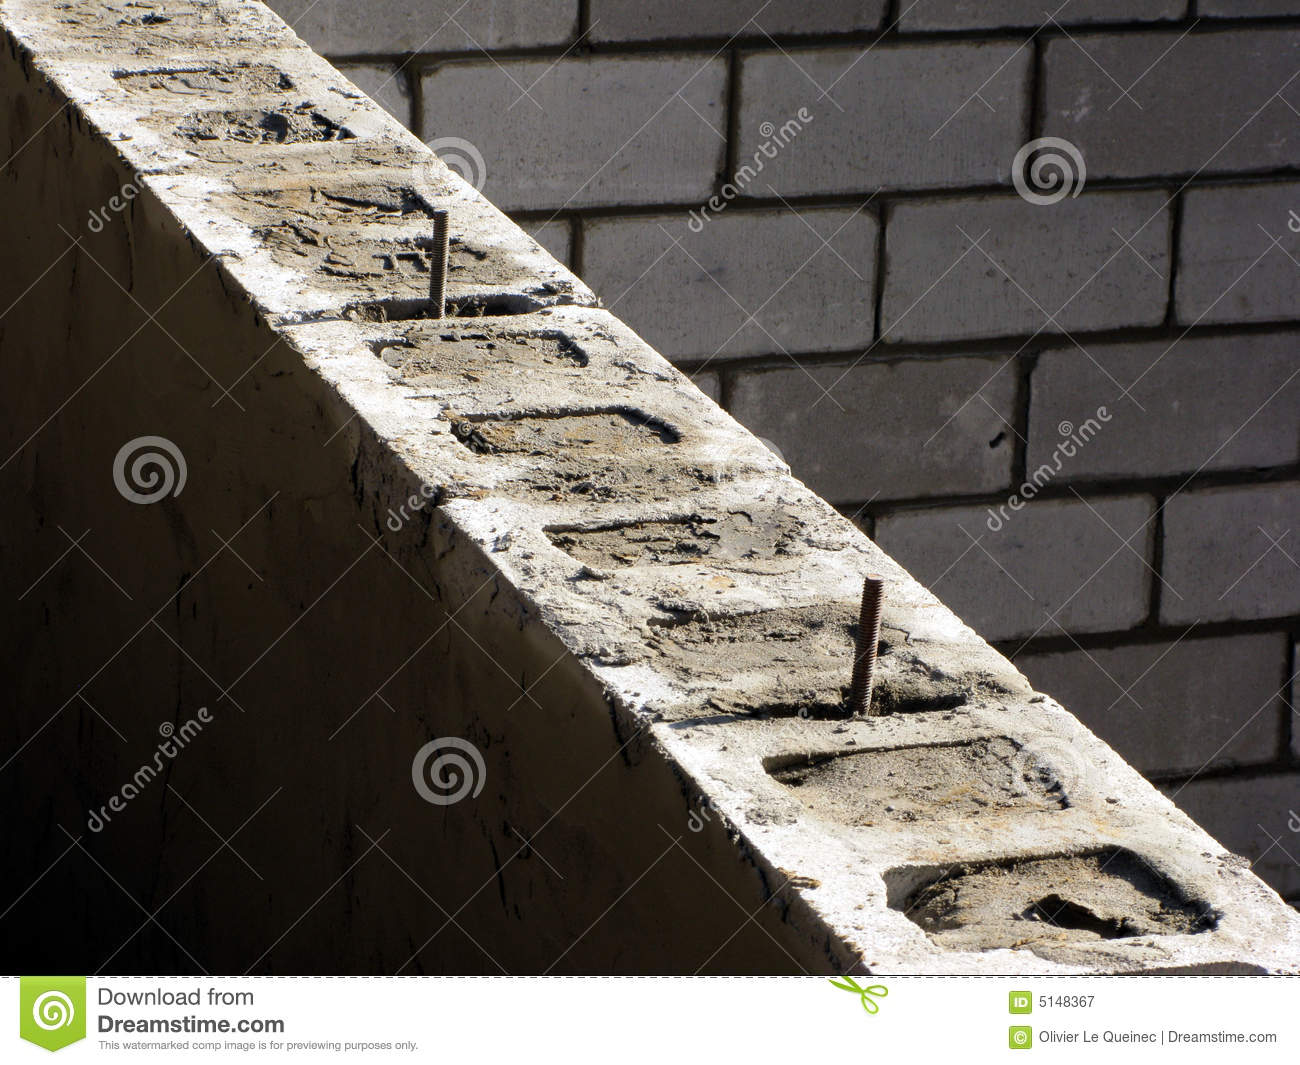 Cinder blocks house concrete foundation wall stock image for Concrete block basement